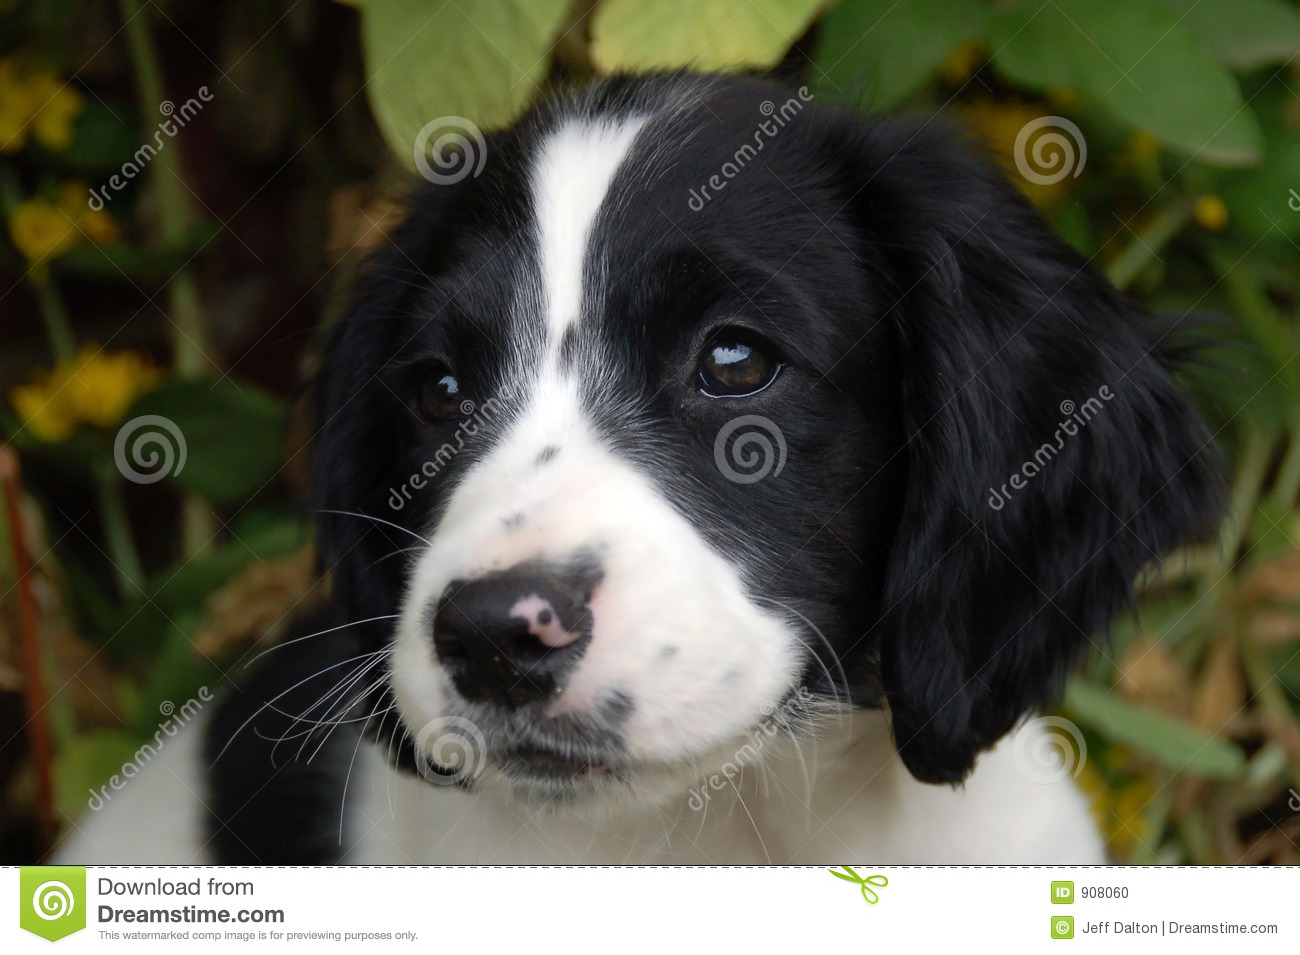 English Springer Spaniel Puppy Stock Photo Image Of Cute Pooch 908060